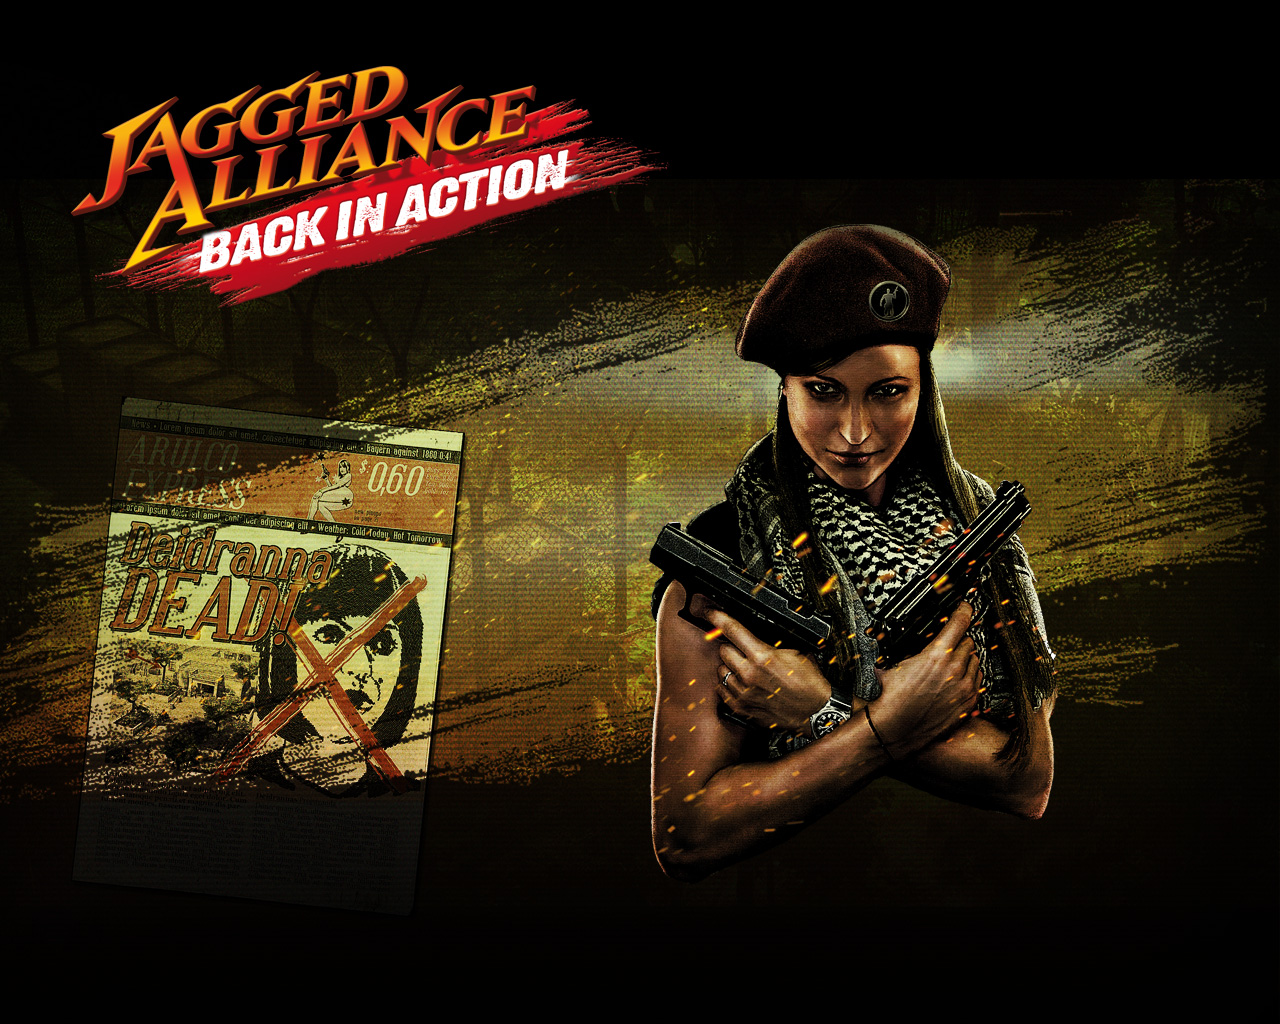 http://download.gamezone.com/screens/Jagged_Alliance_Back_in_Action_Wallpaper_01_1280x1024.jpg